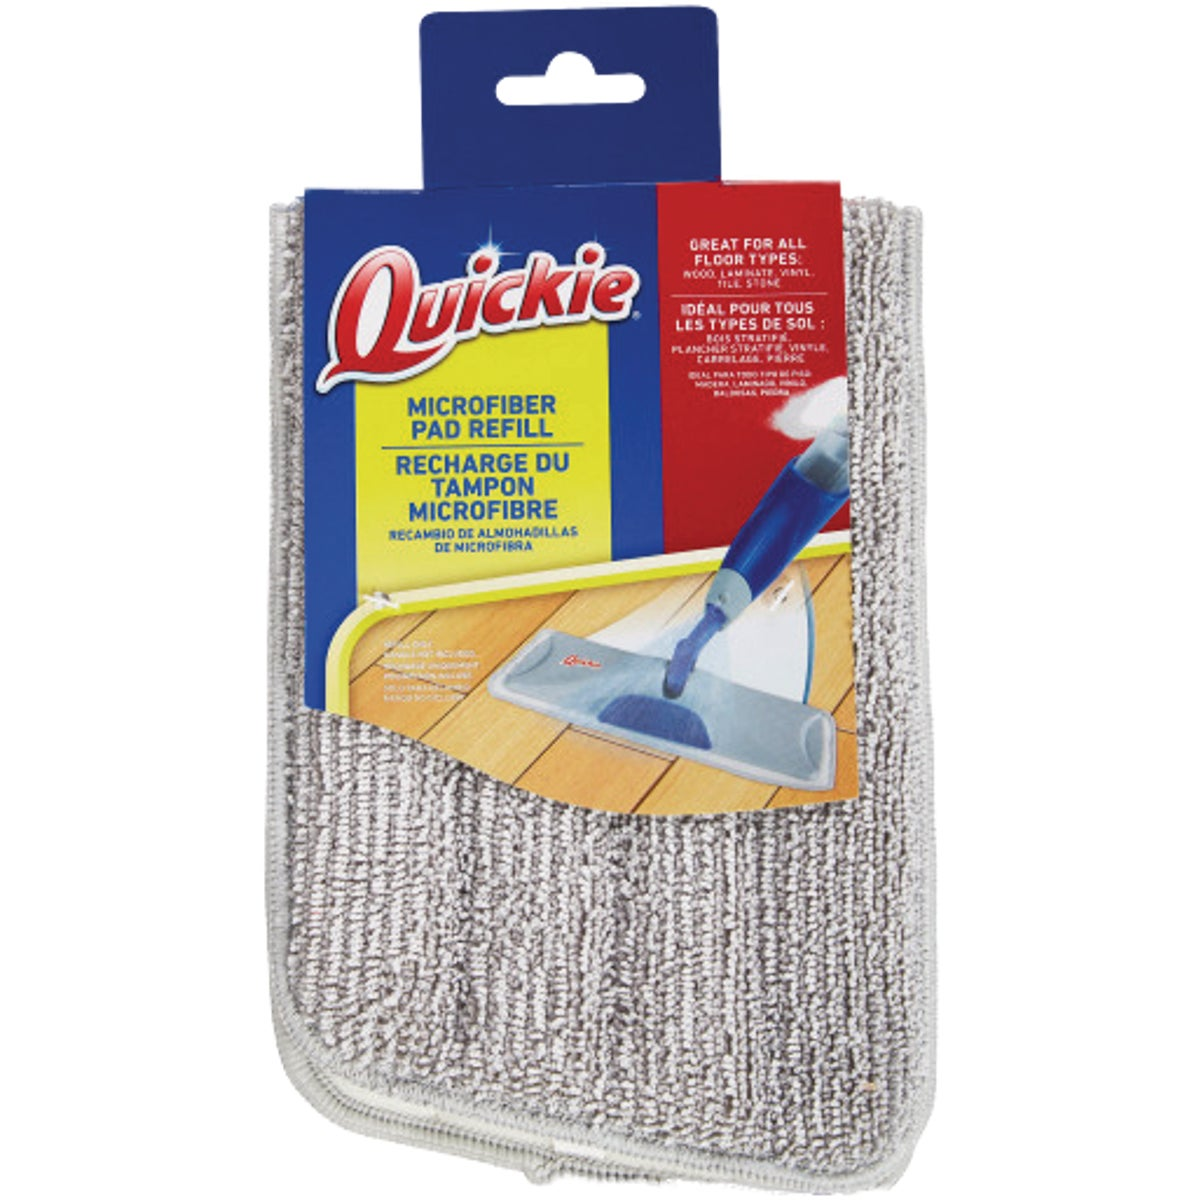 REVEAL MOP CLEANING PAD